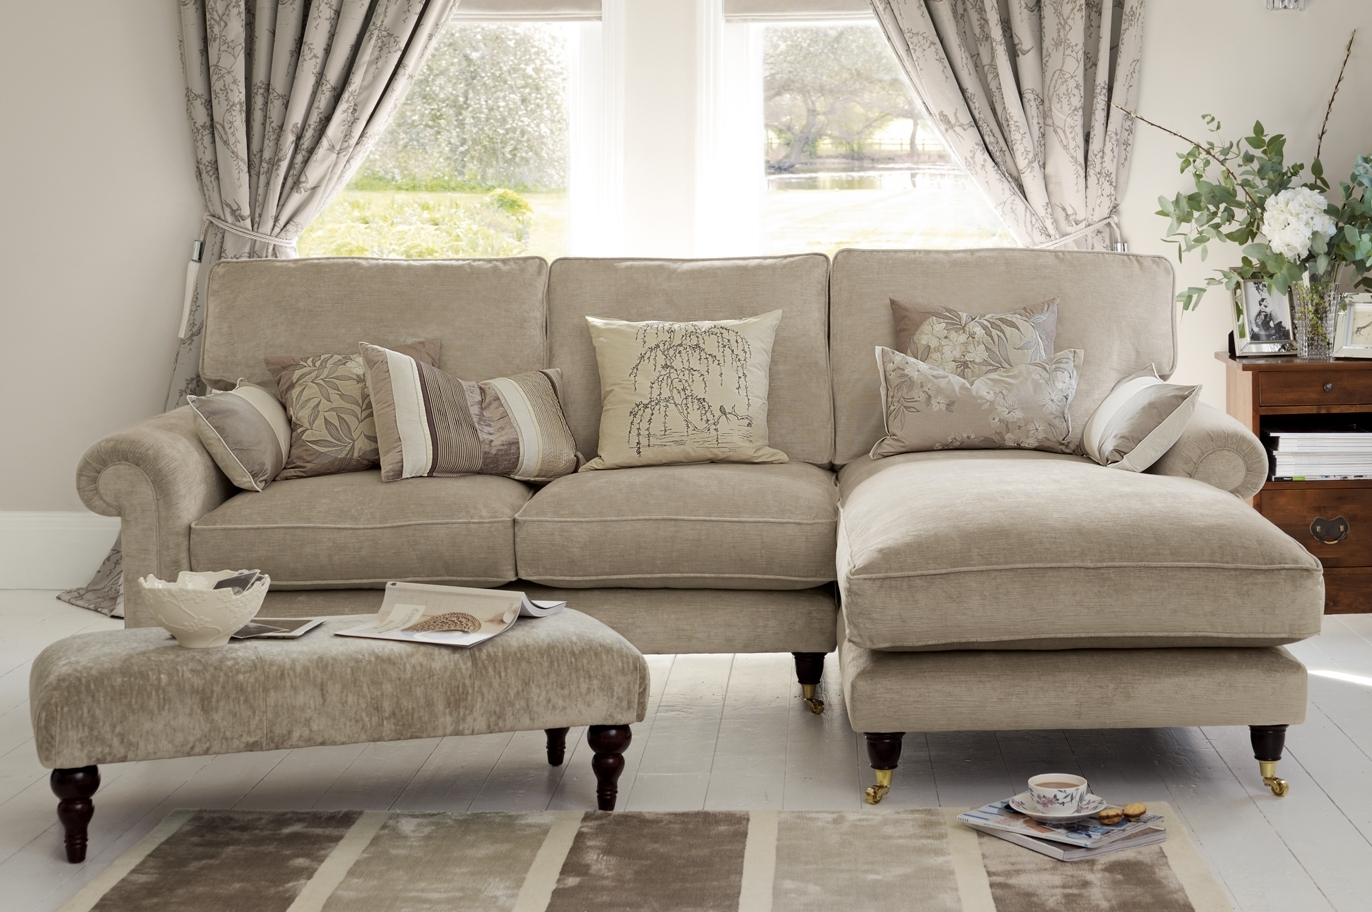 "Kingston"" Sectional Sofa With Chaise In Sable Beige From Laura Pertaining To 2018 Beige Sectionals With Chaise (View 6 of 15)"